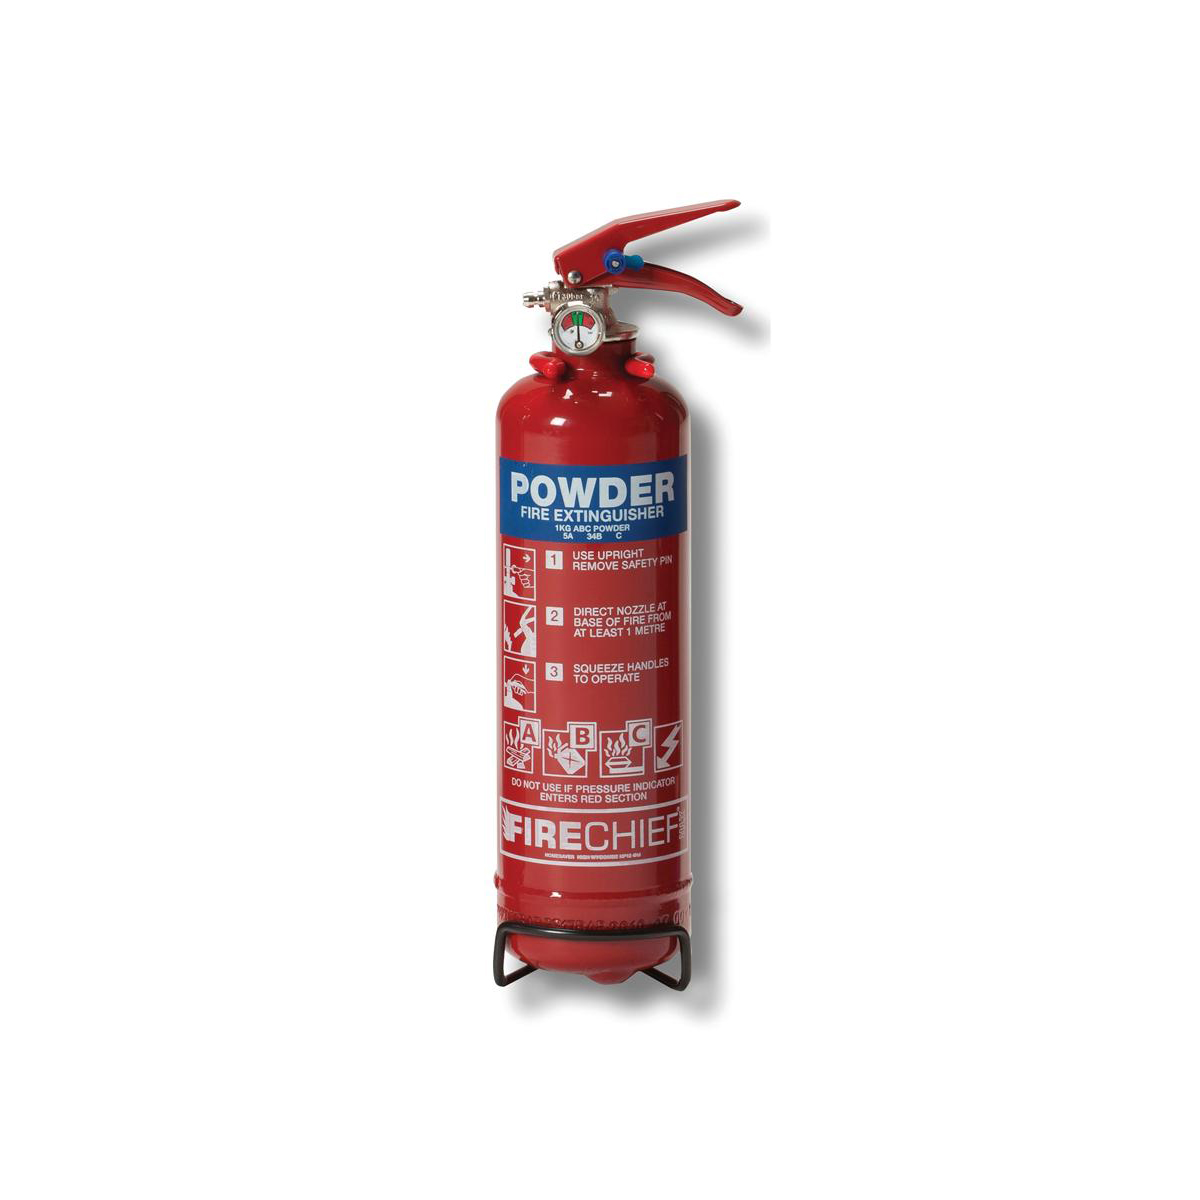 Dry Powder IVG 1.0KG Powder Fire Extinguisherfor Class A B and C Fires Ref WG10116